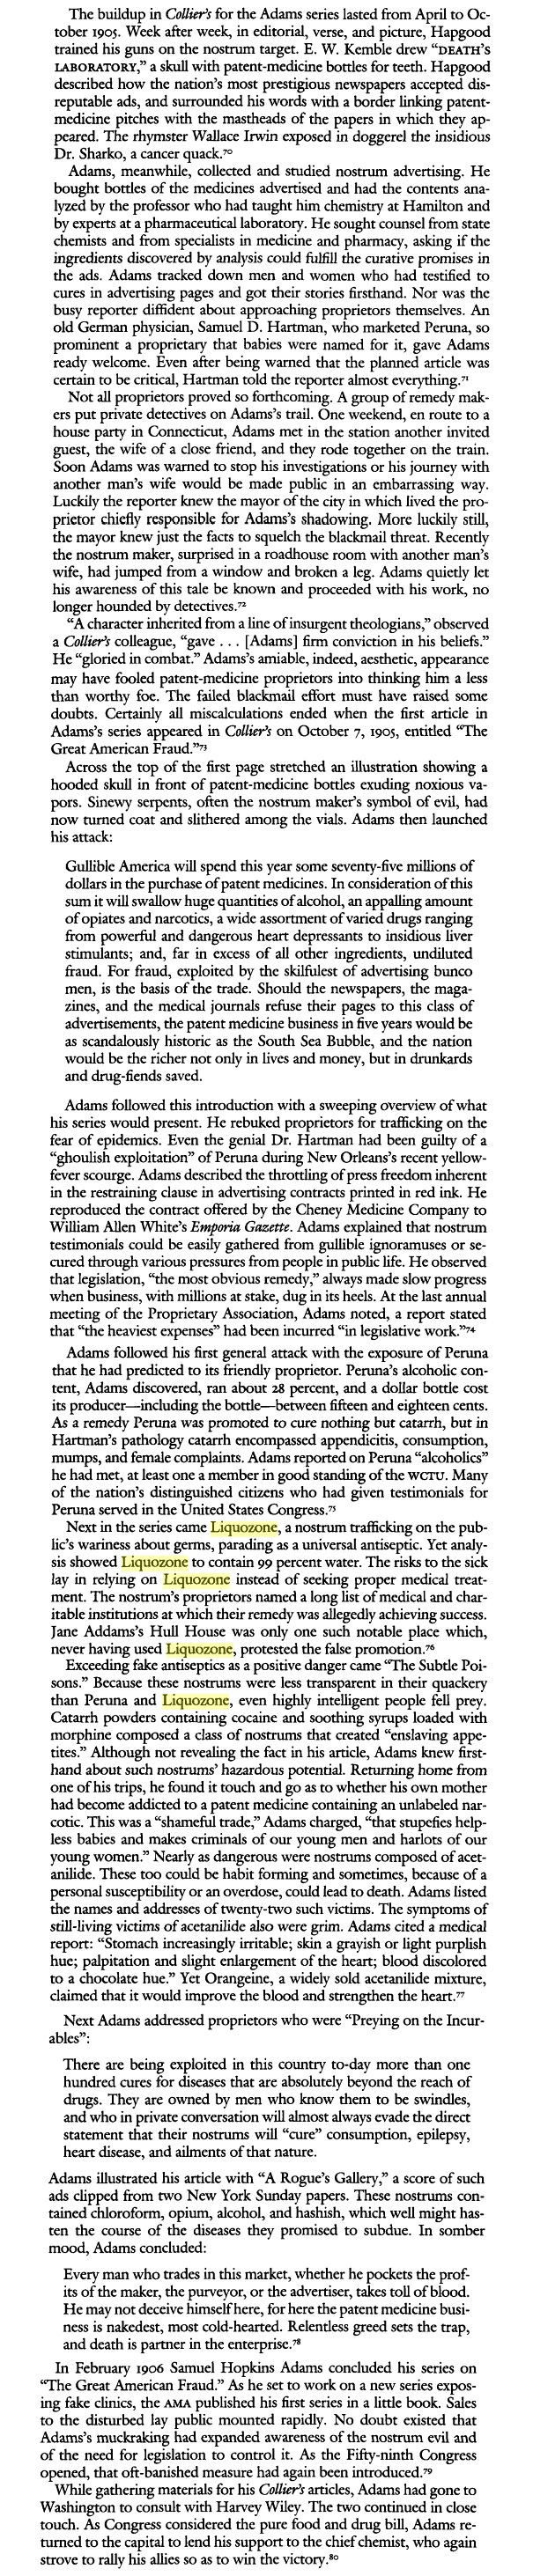 Excerpt from Pure Food: Securing the Federal Food and Drugs Act of 1906 by James Harvey Young, 2014